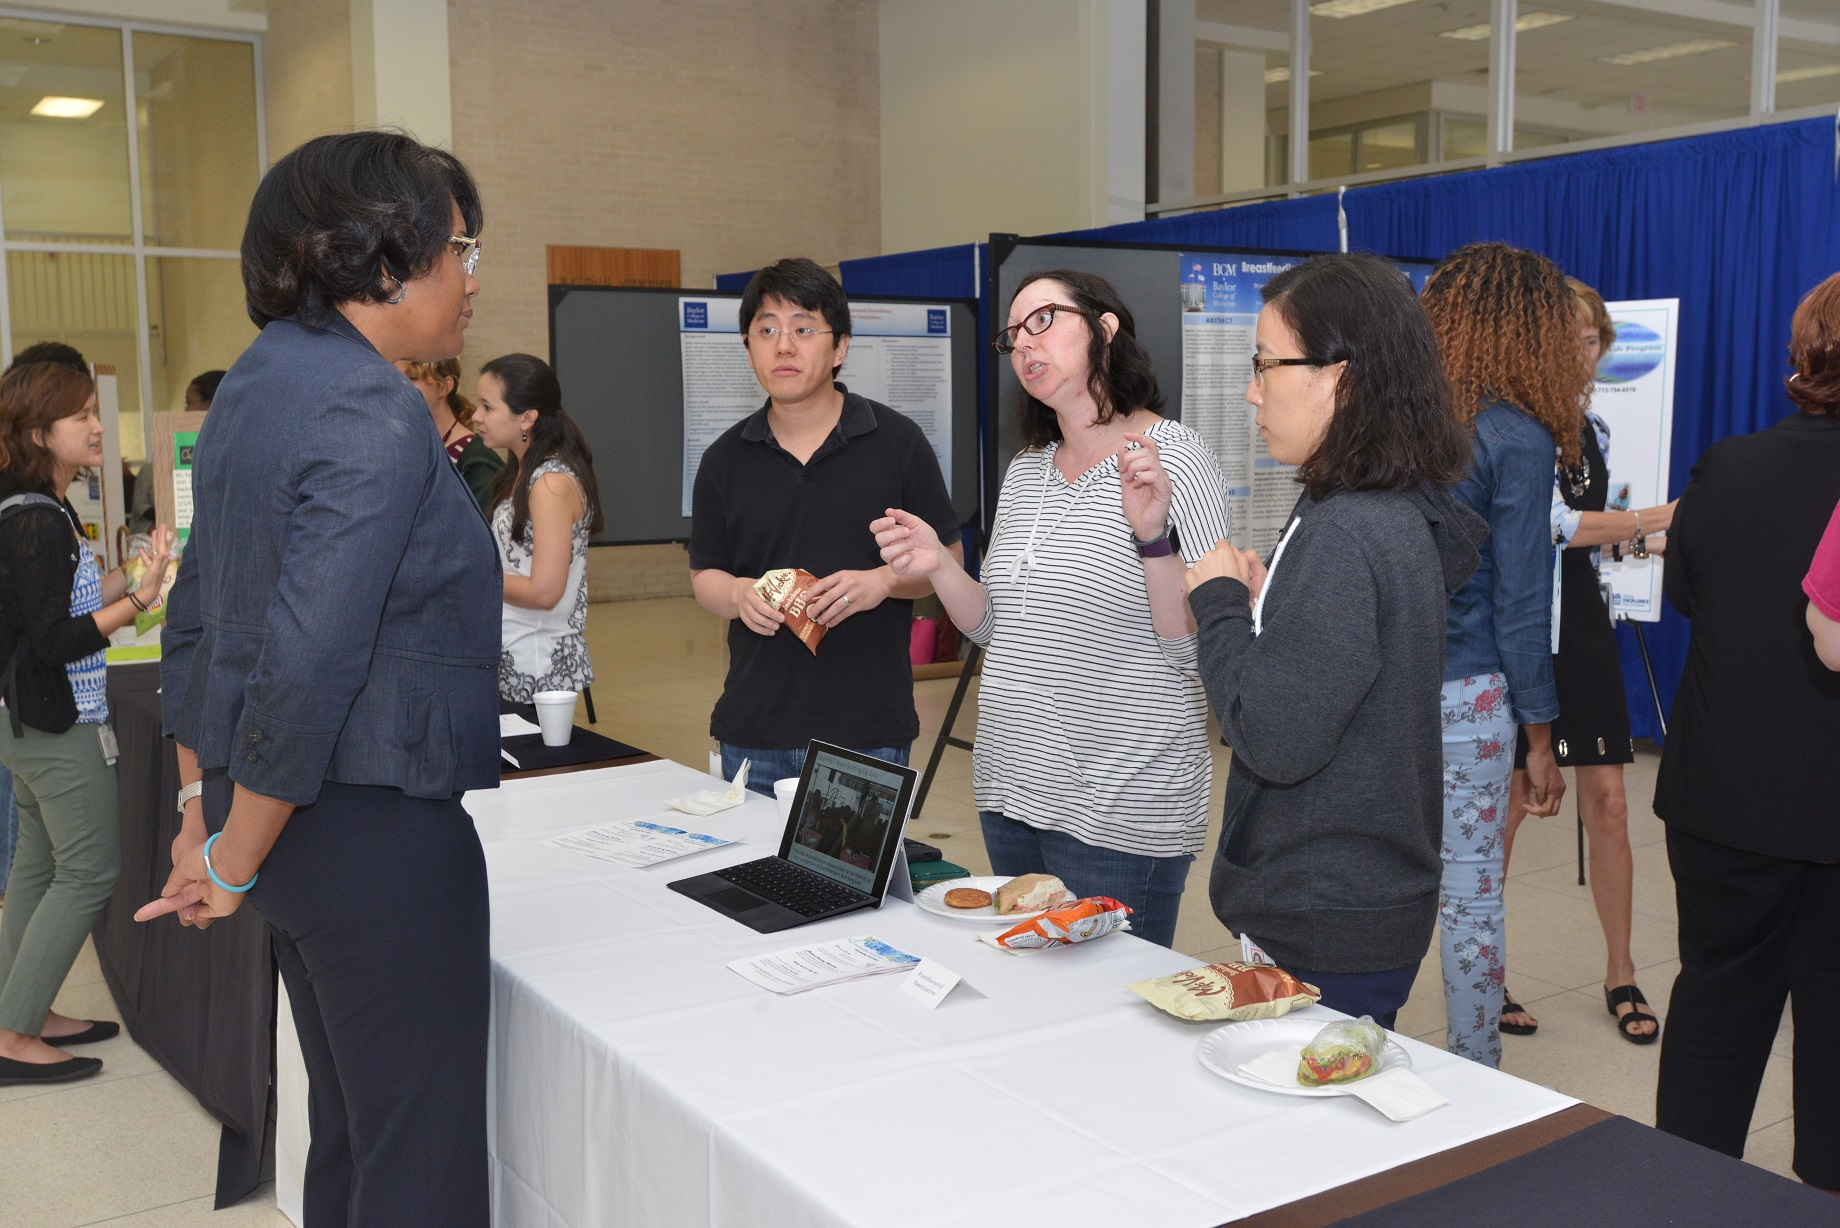 Several attendees, including faculty, students and trainees, presenting at BCM's annual National Diversity and Inclusion closing Showcase event.